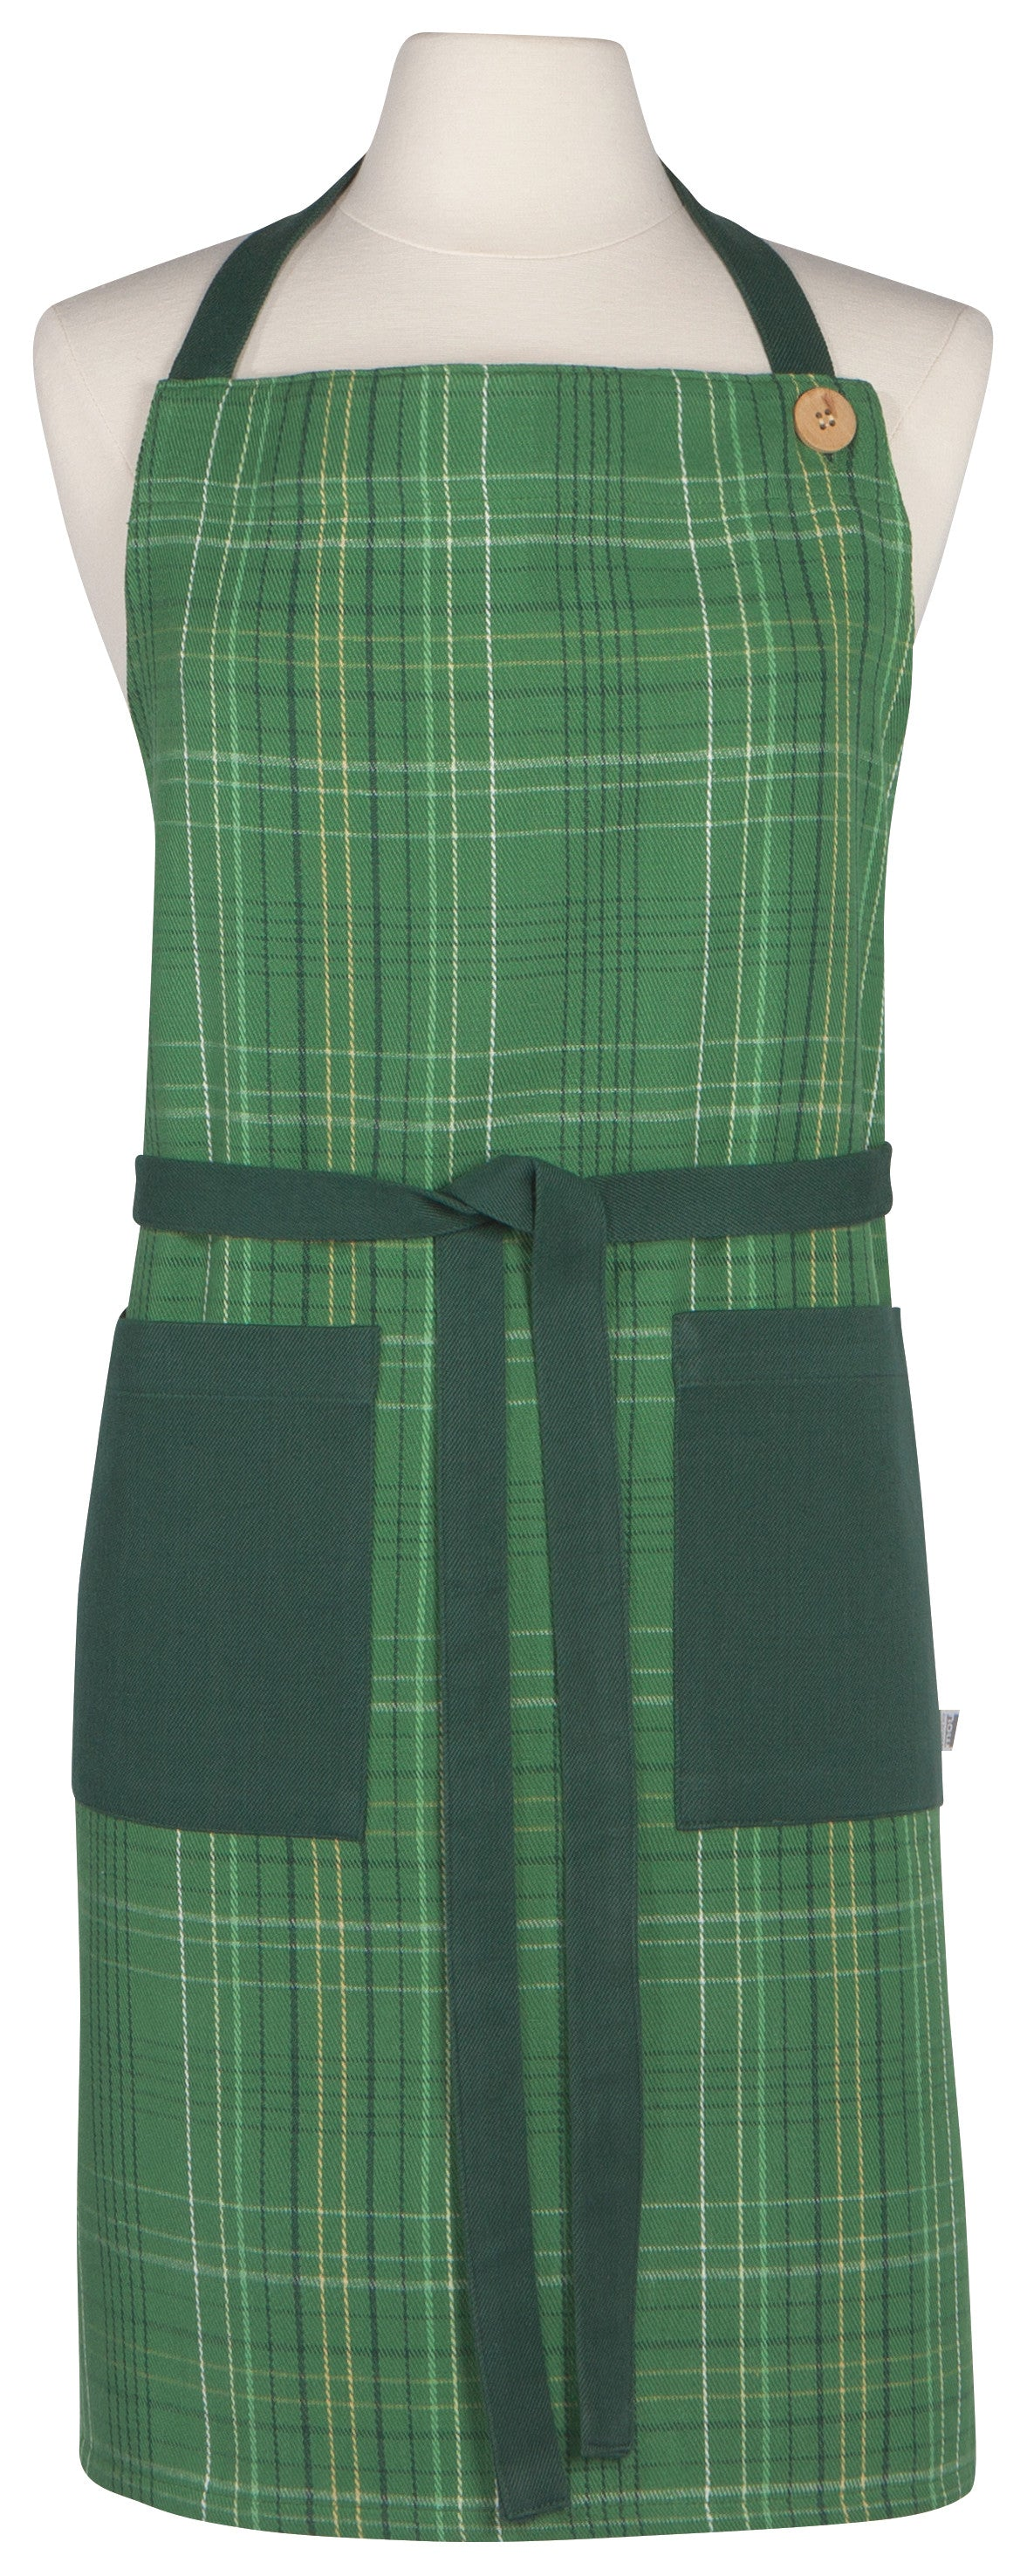 Apron Spruce Woods Plaid